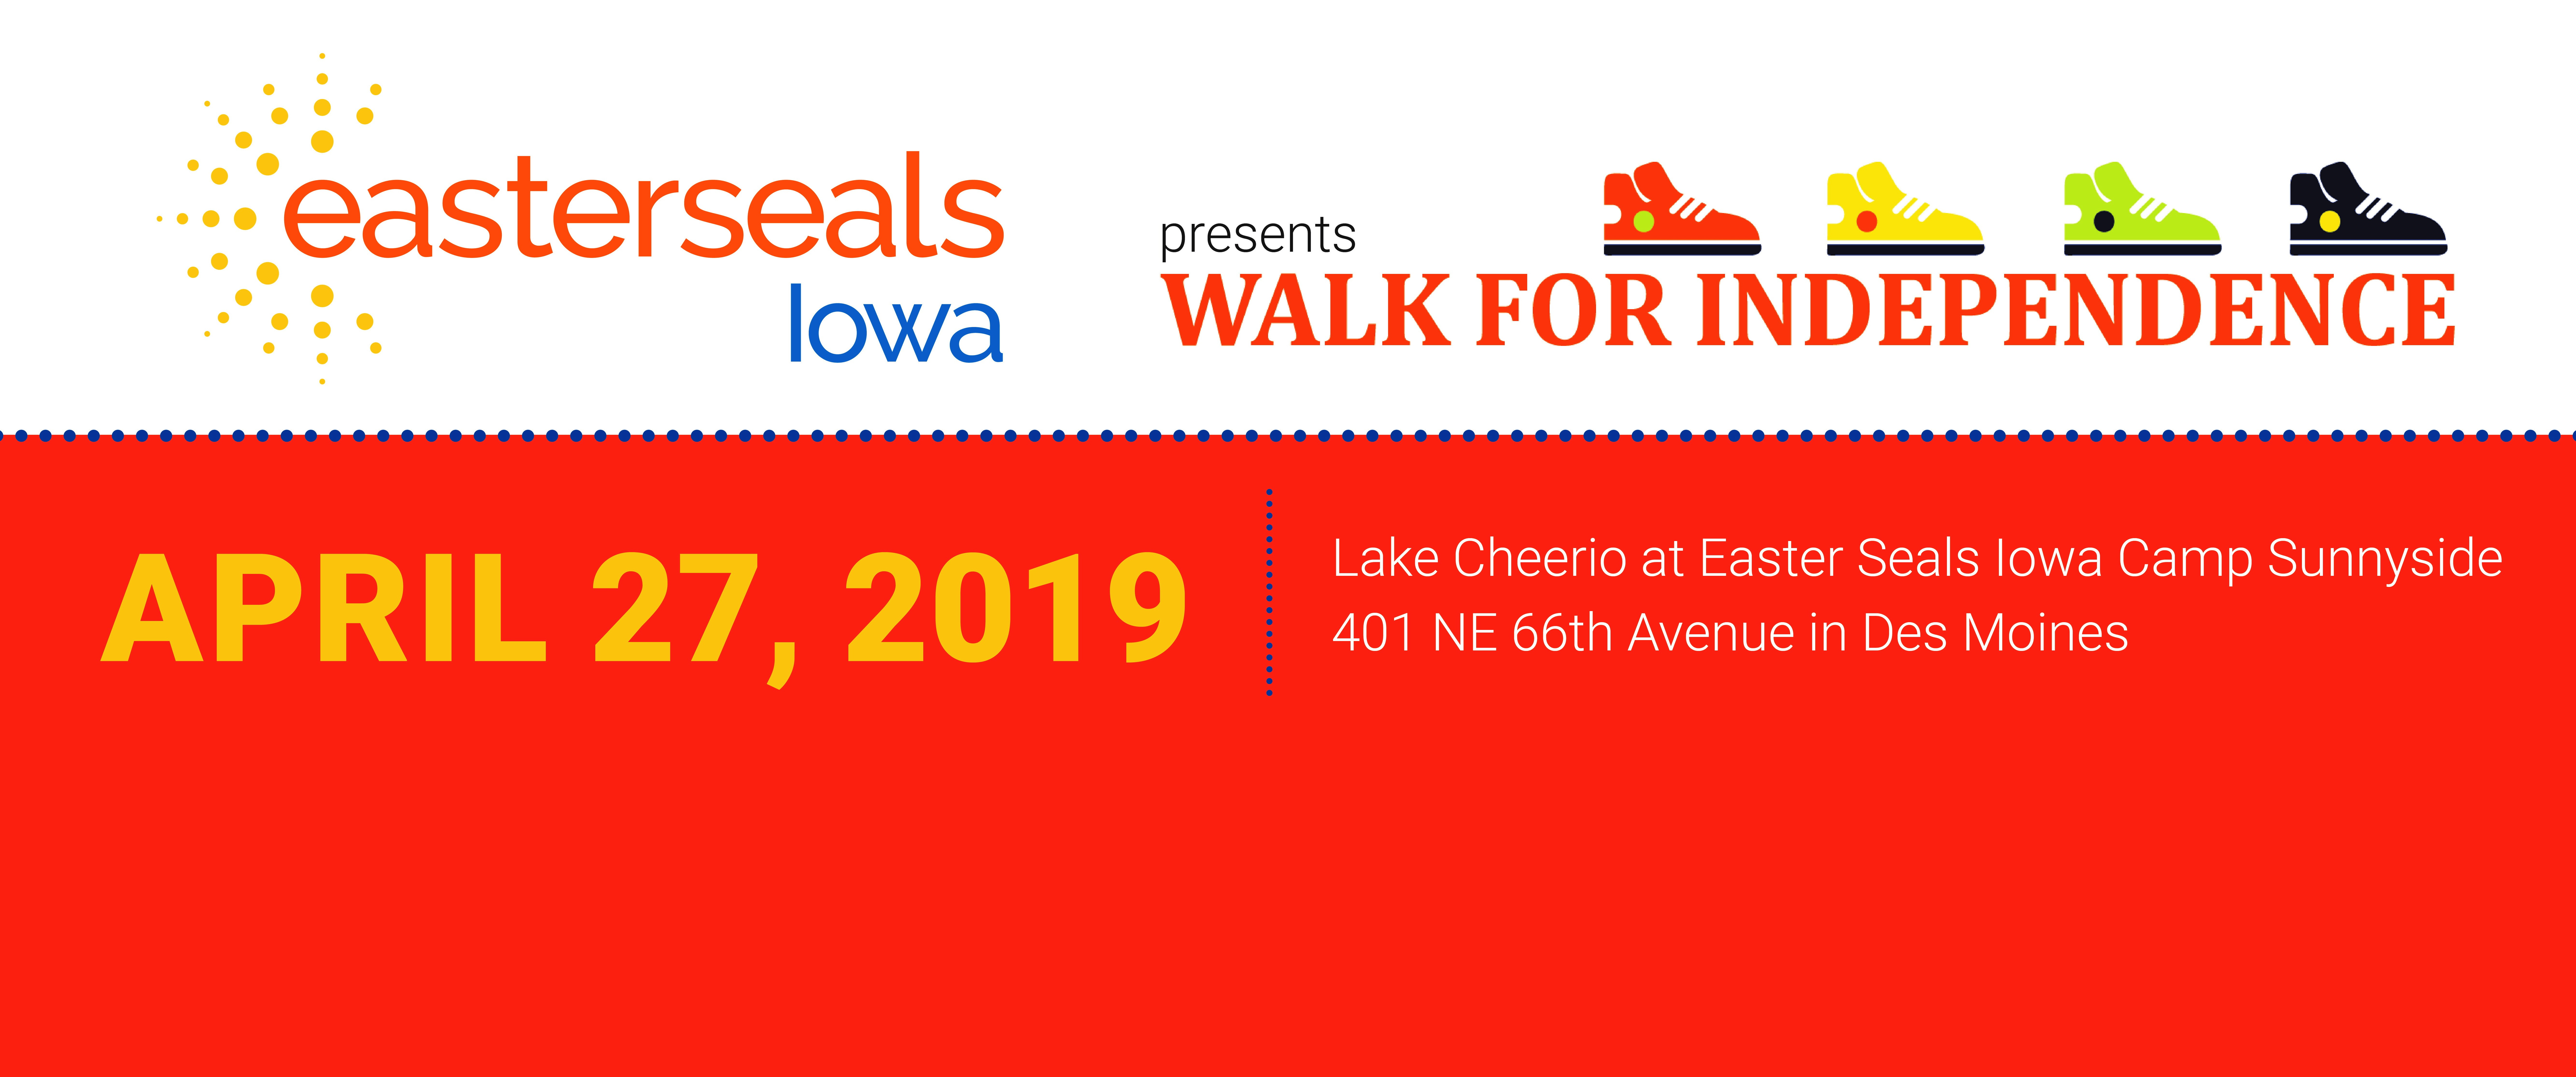 Walk for Independence is April 27